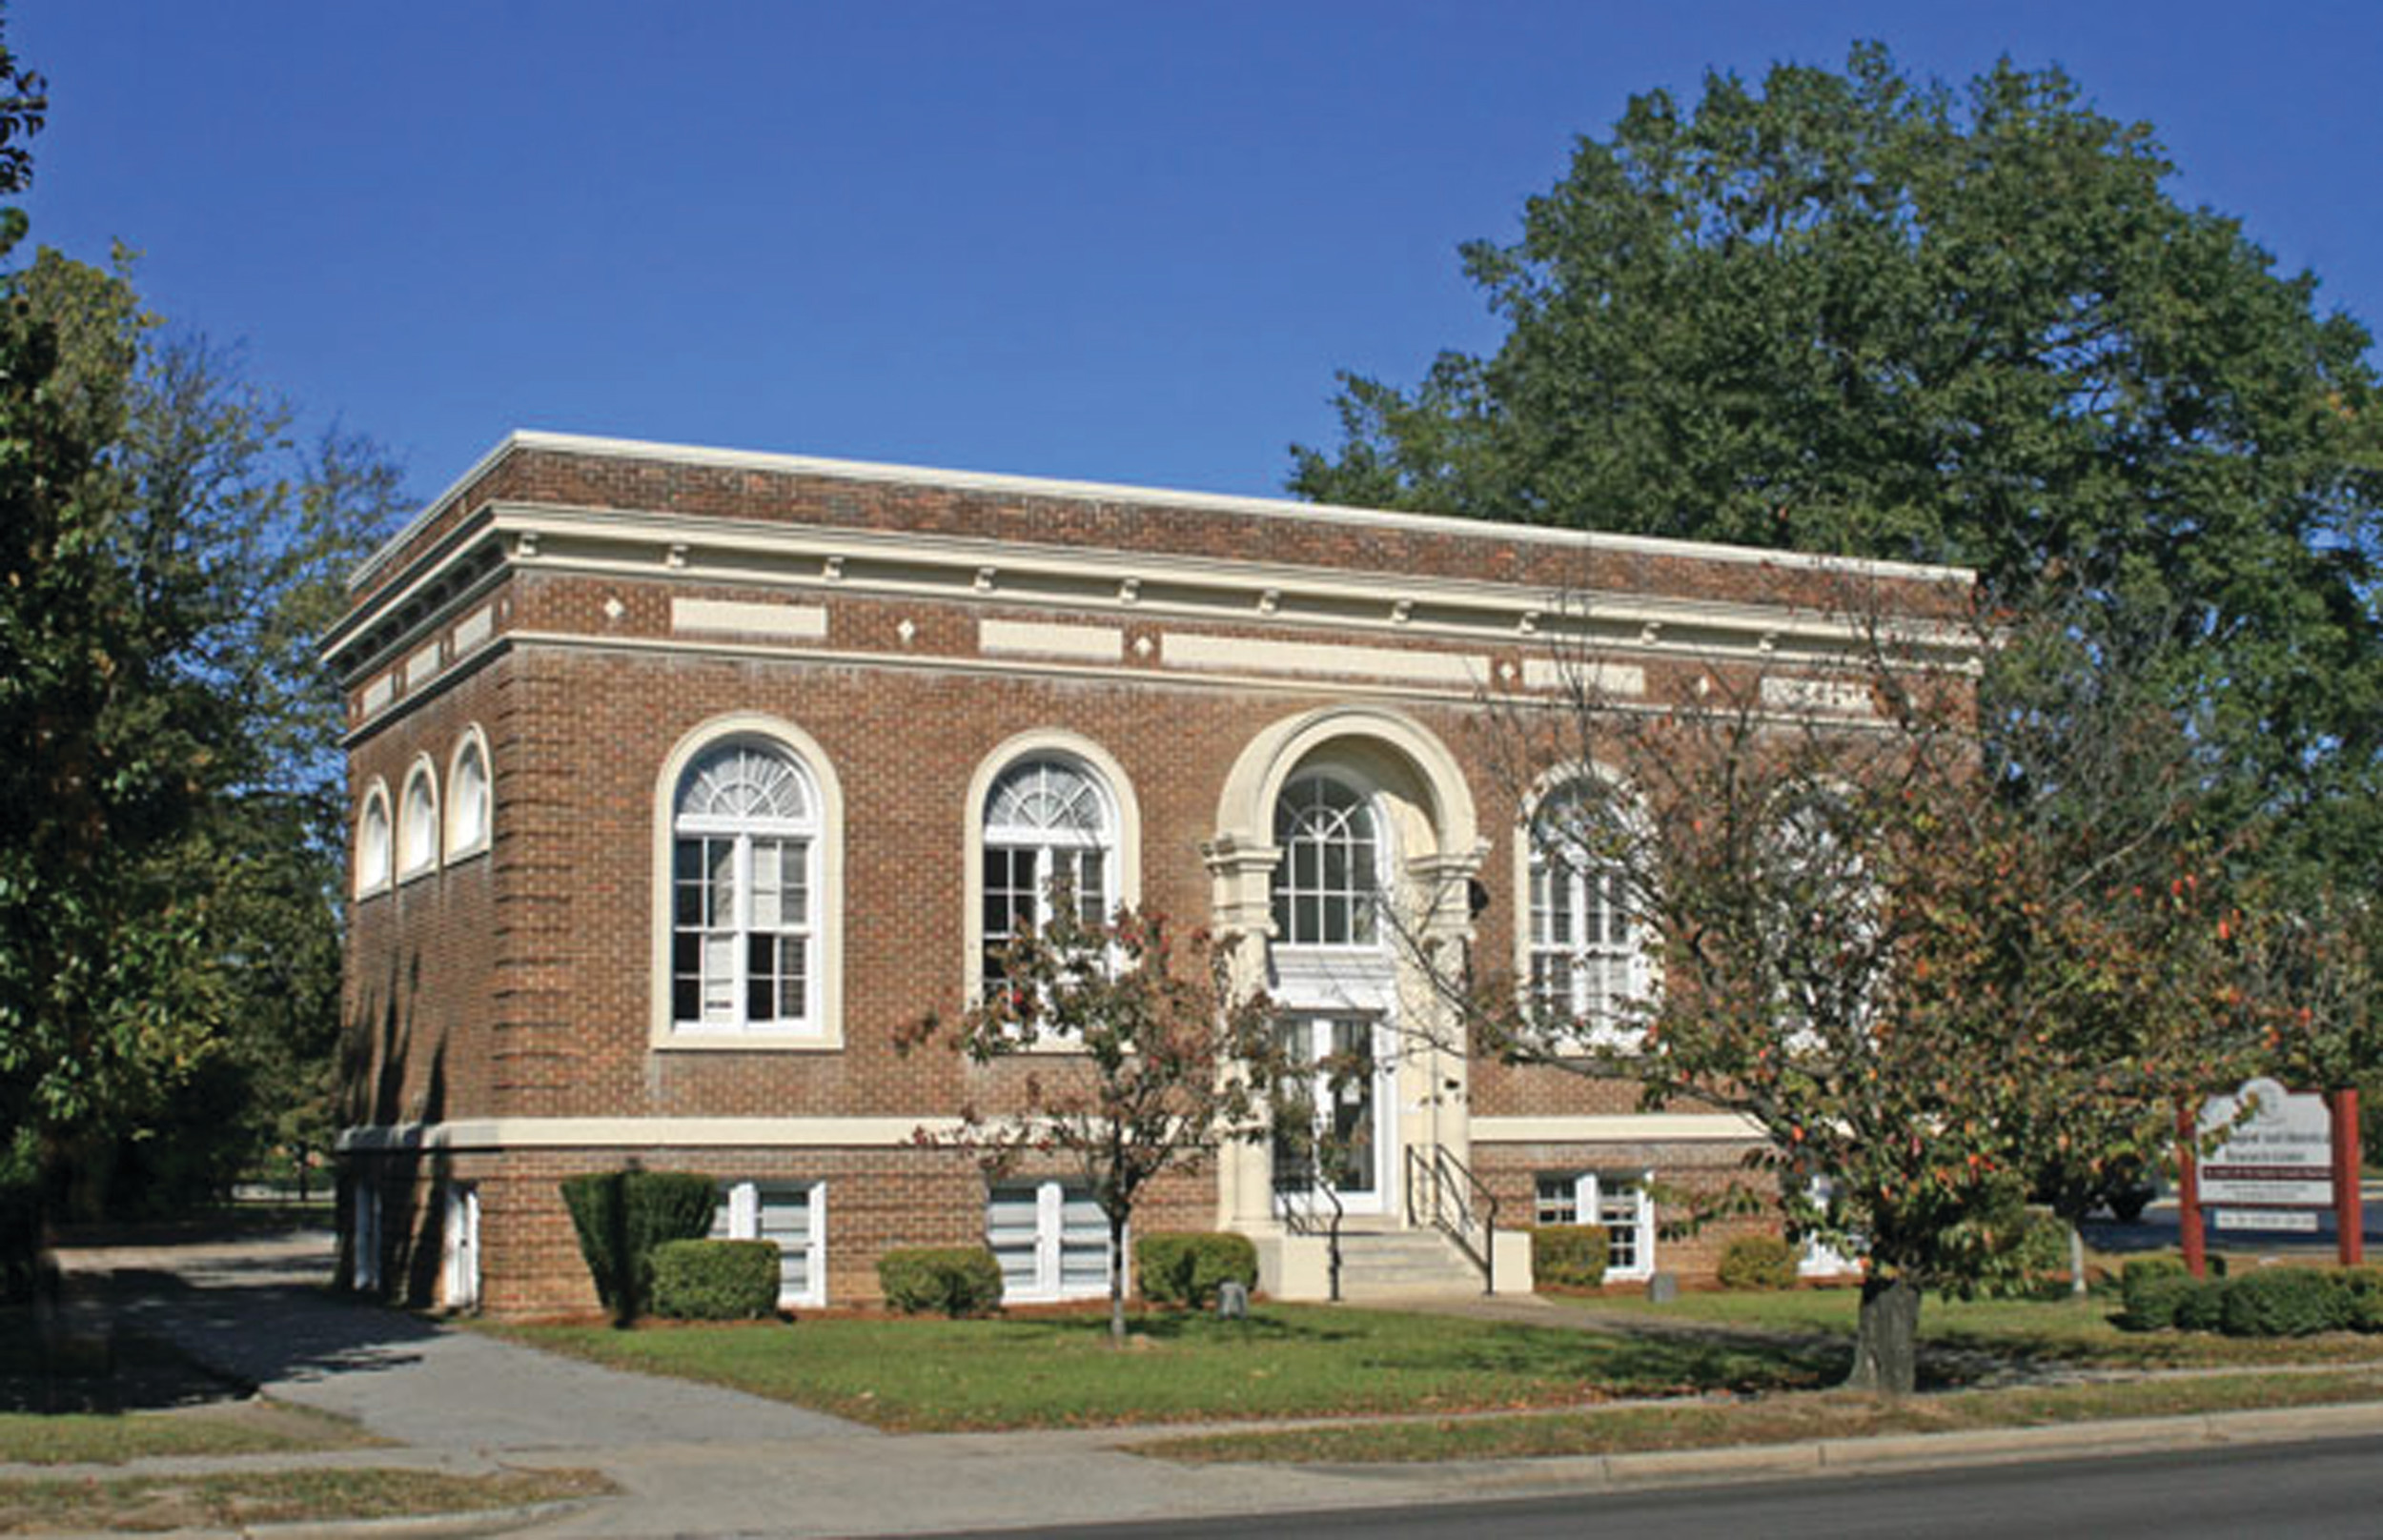 The original Sumter County public library opened Dec. 4, 1917, as the Carnegie Public Library, funded by steel magnate Andrew Carnegie. The building still stands at 219 W. Liberty St.